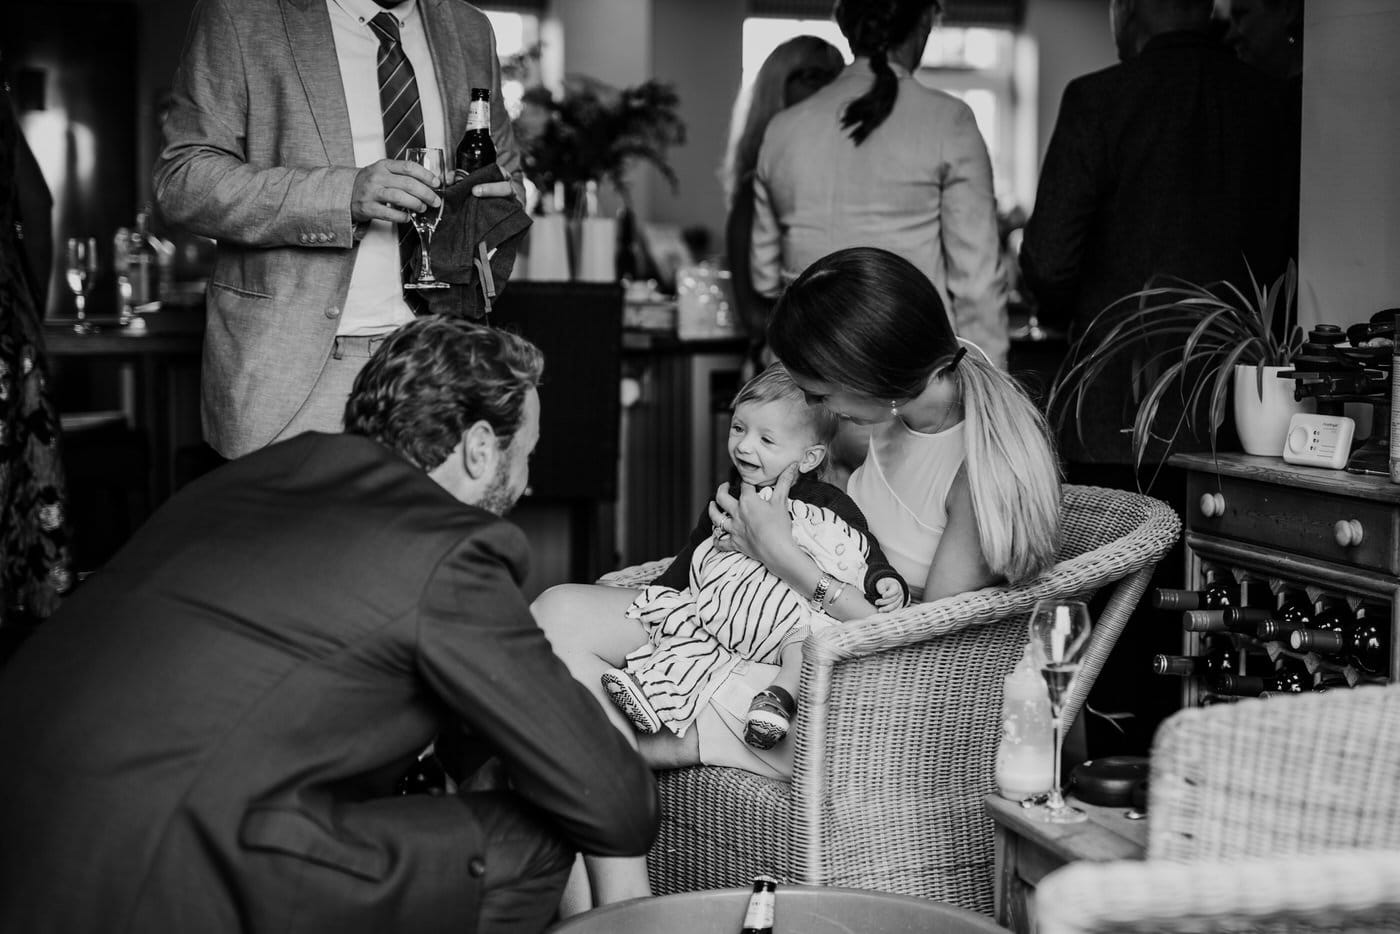 A baby interacting with a groom at a wedding